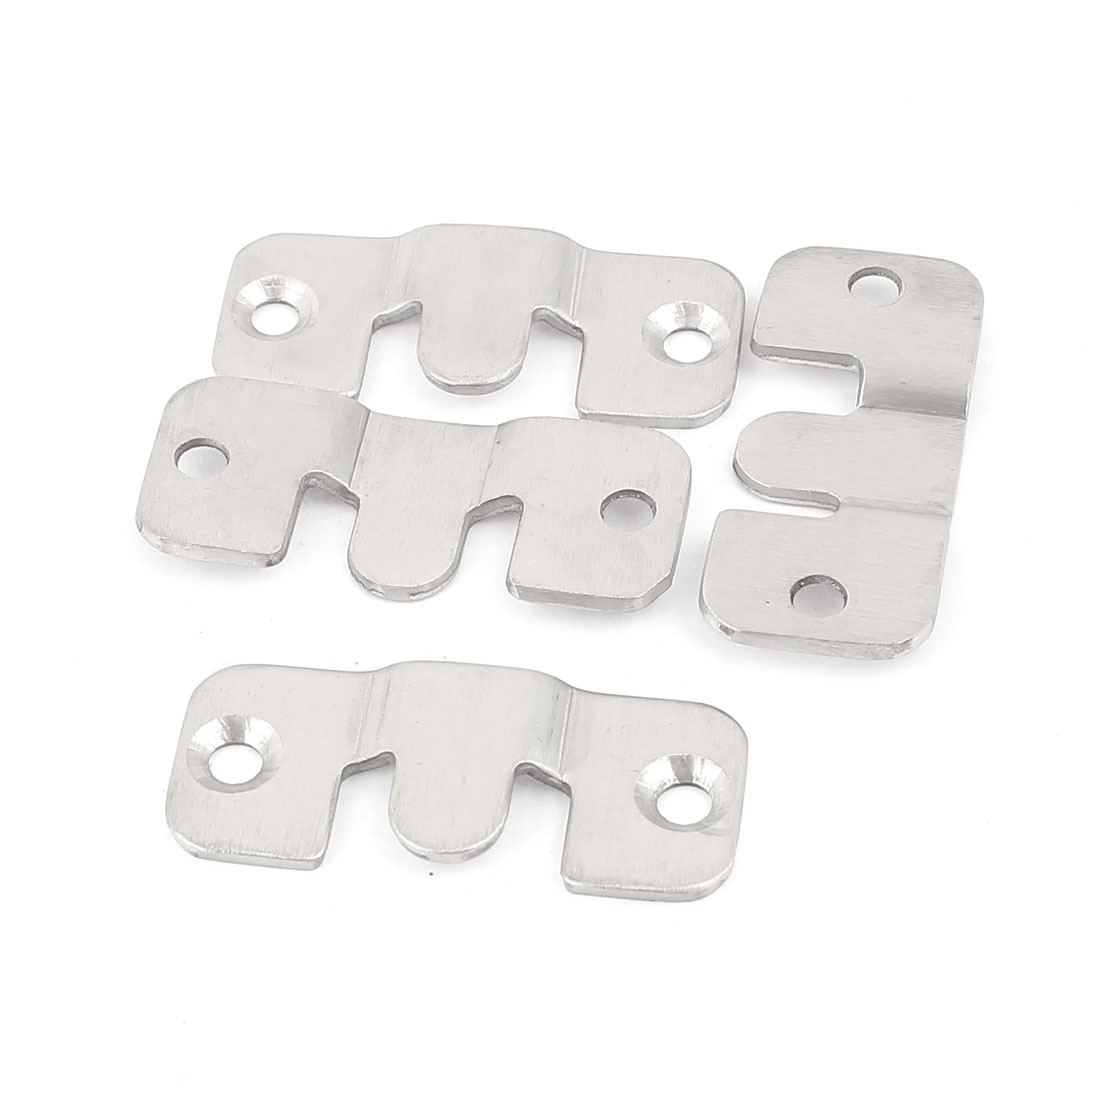 UXCELL Universal Sectional Interlock Sofa Couch Connector Bracket Set 4PcsUXCELL Universal Sectional Interlock Sofa Couch Connector Bracket Set 4Pcs